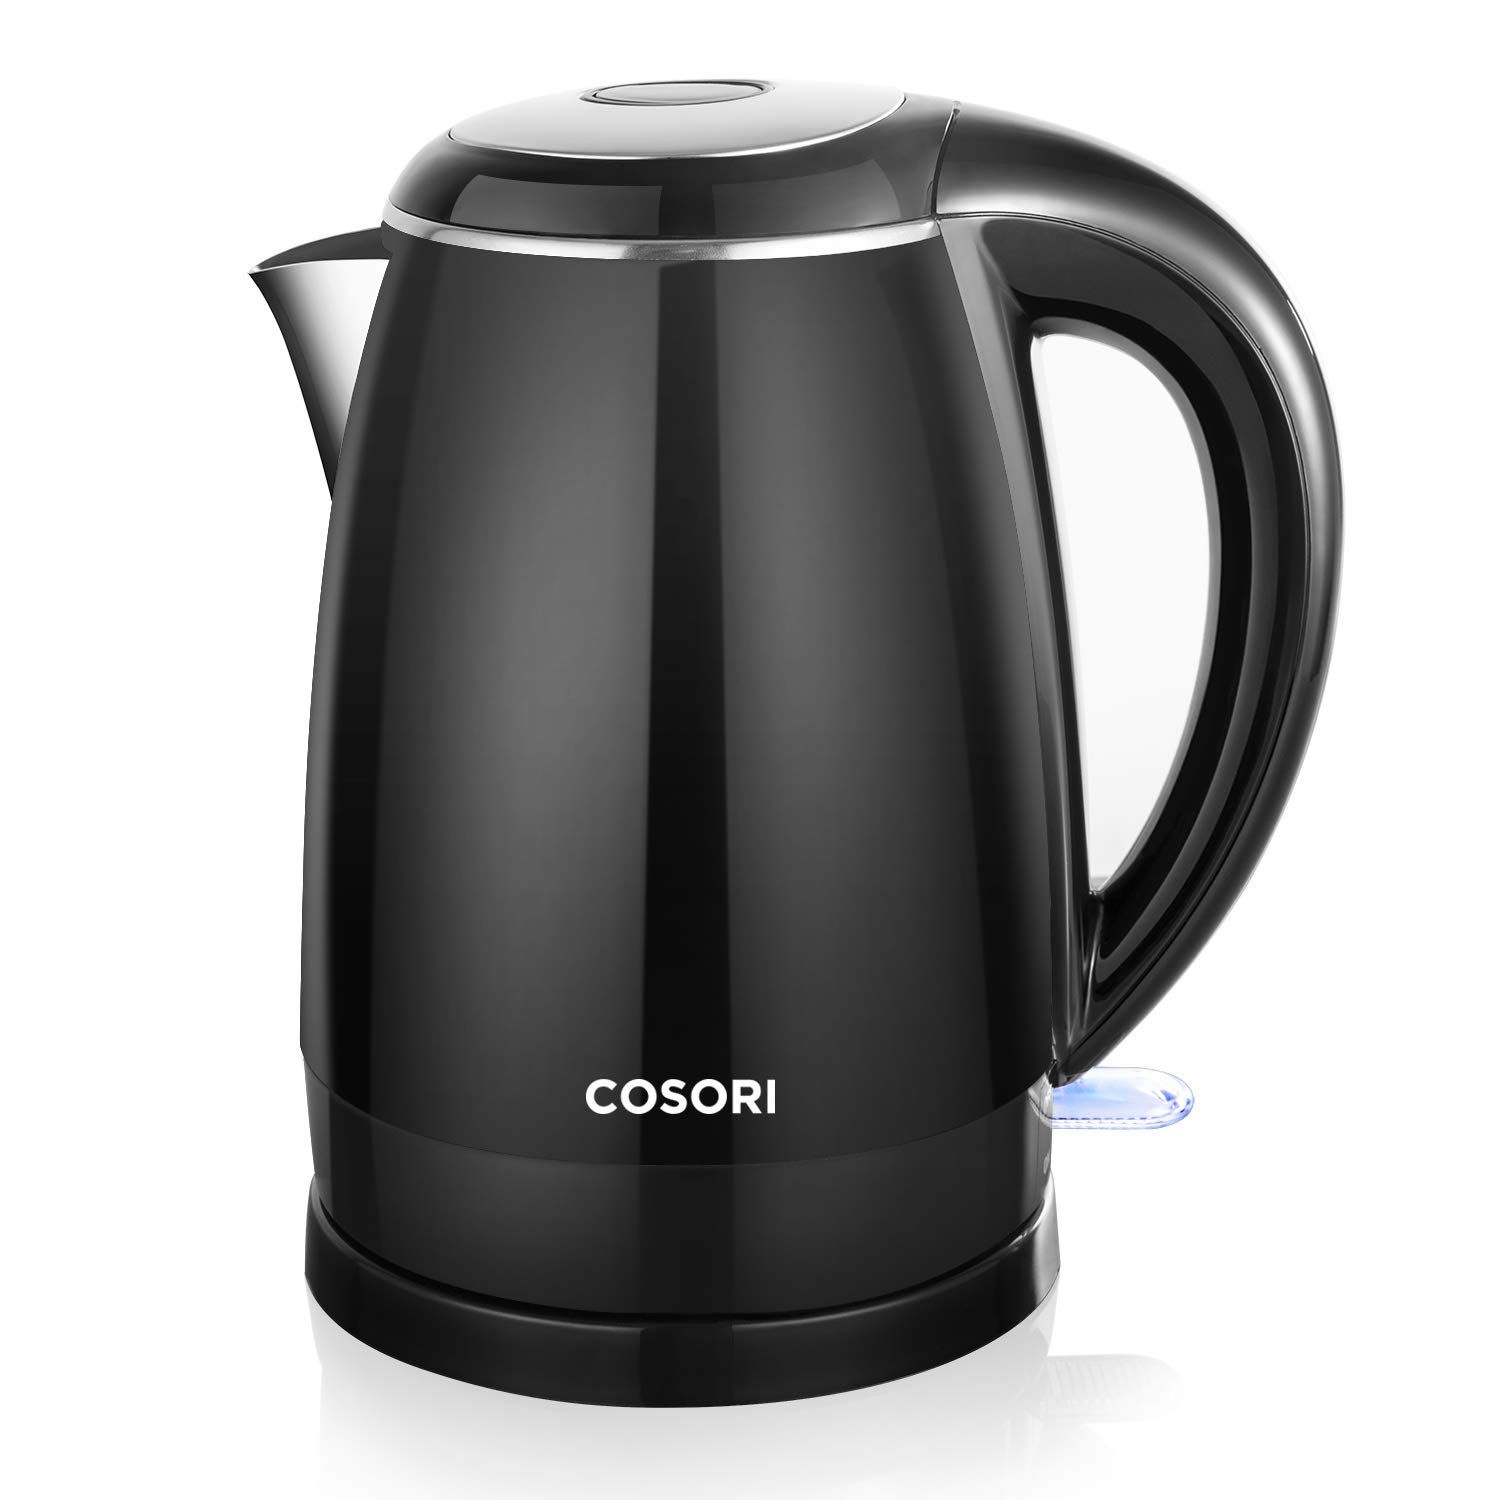 COSORI Electric Kettle(BPA Free), 1.8 Qt Double Wall 304 Stainless Steel Water Boiler, Coffee Pot & Tea Kettle, Auto Shut-Off and Boil-Dry Protection, Cordless,FDA/ETL/CETL Approved, 2 Year Warranty by COSORI